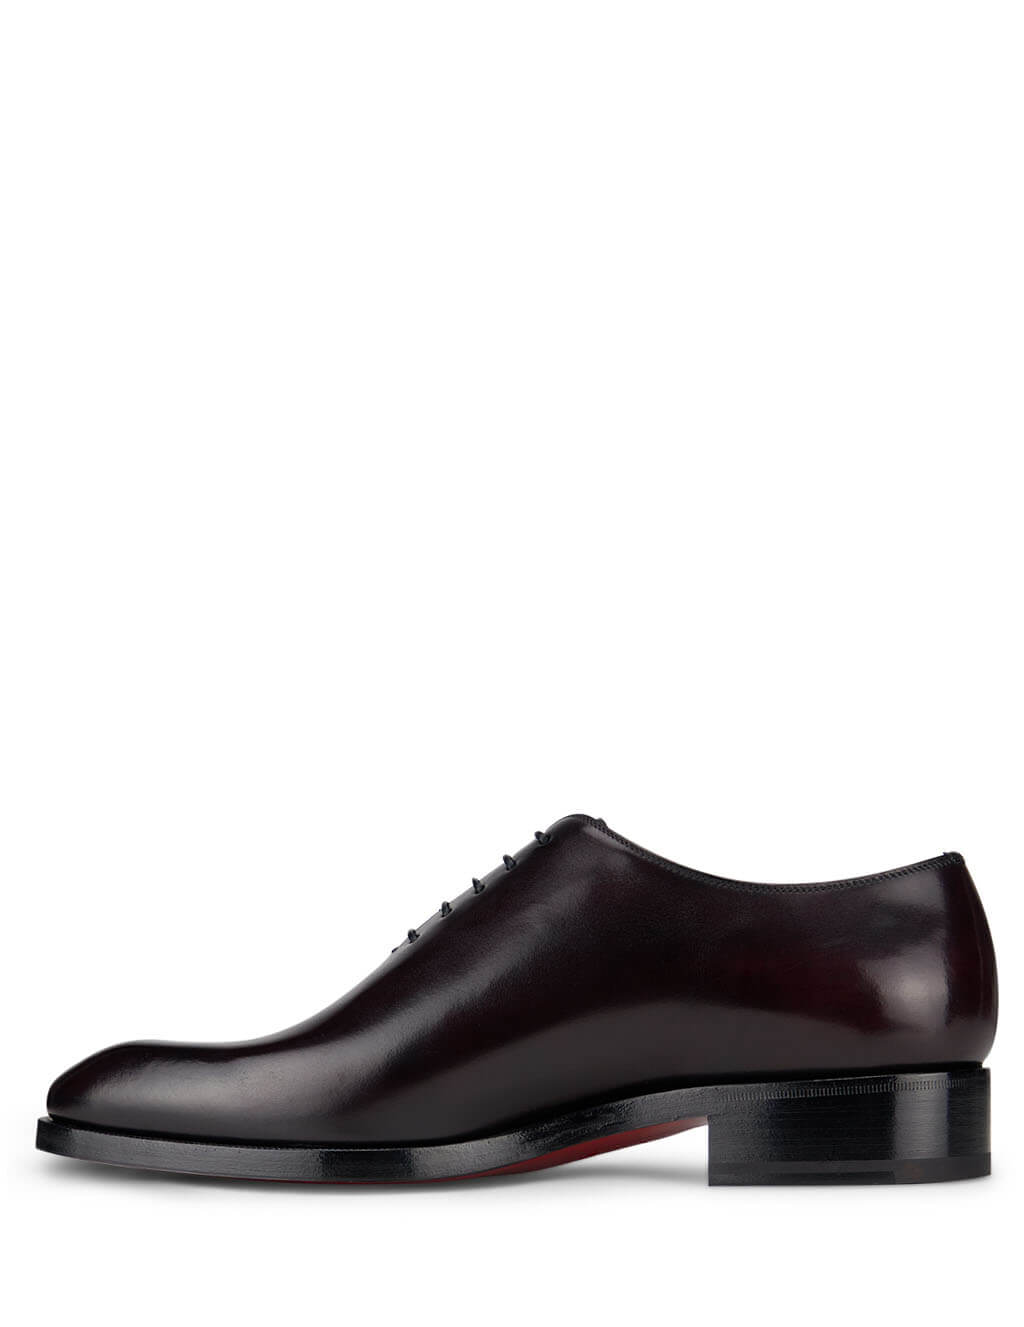 Christian Louboutin Oxblood Cousin Corteo Loafers 3201138R275